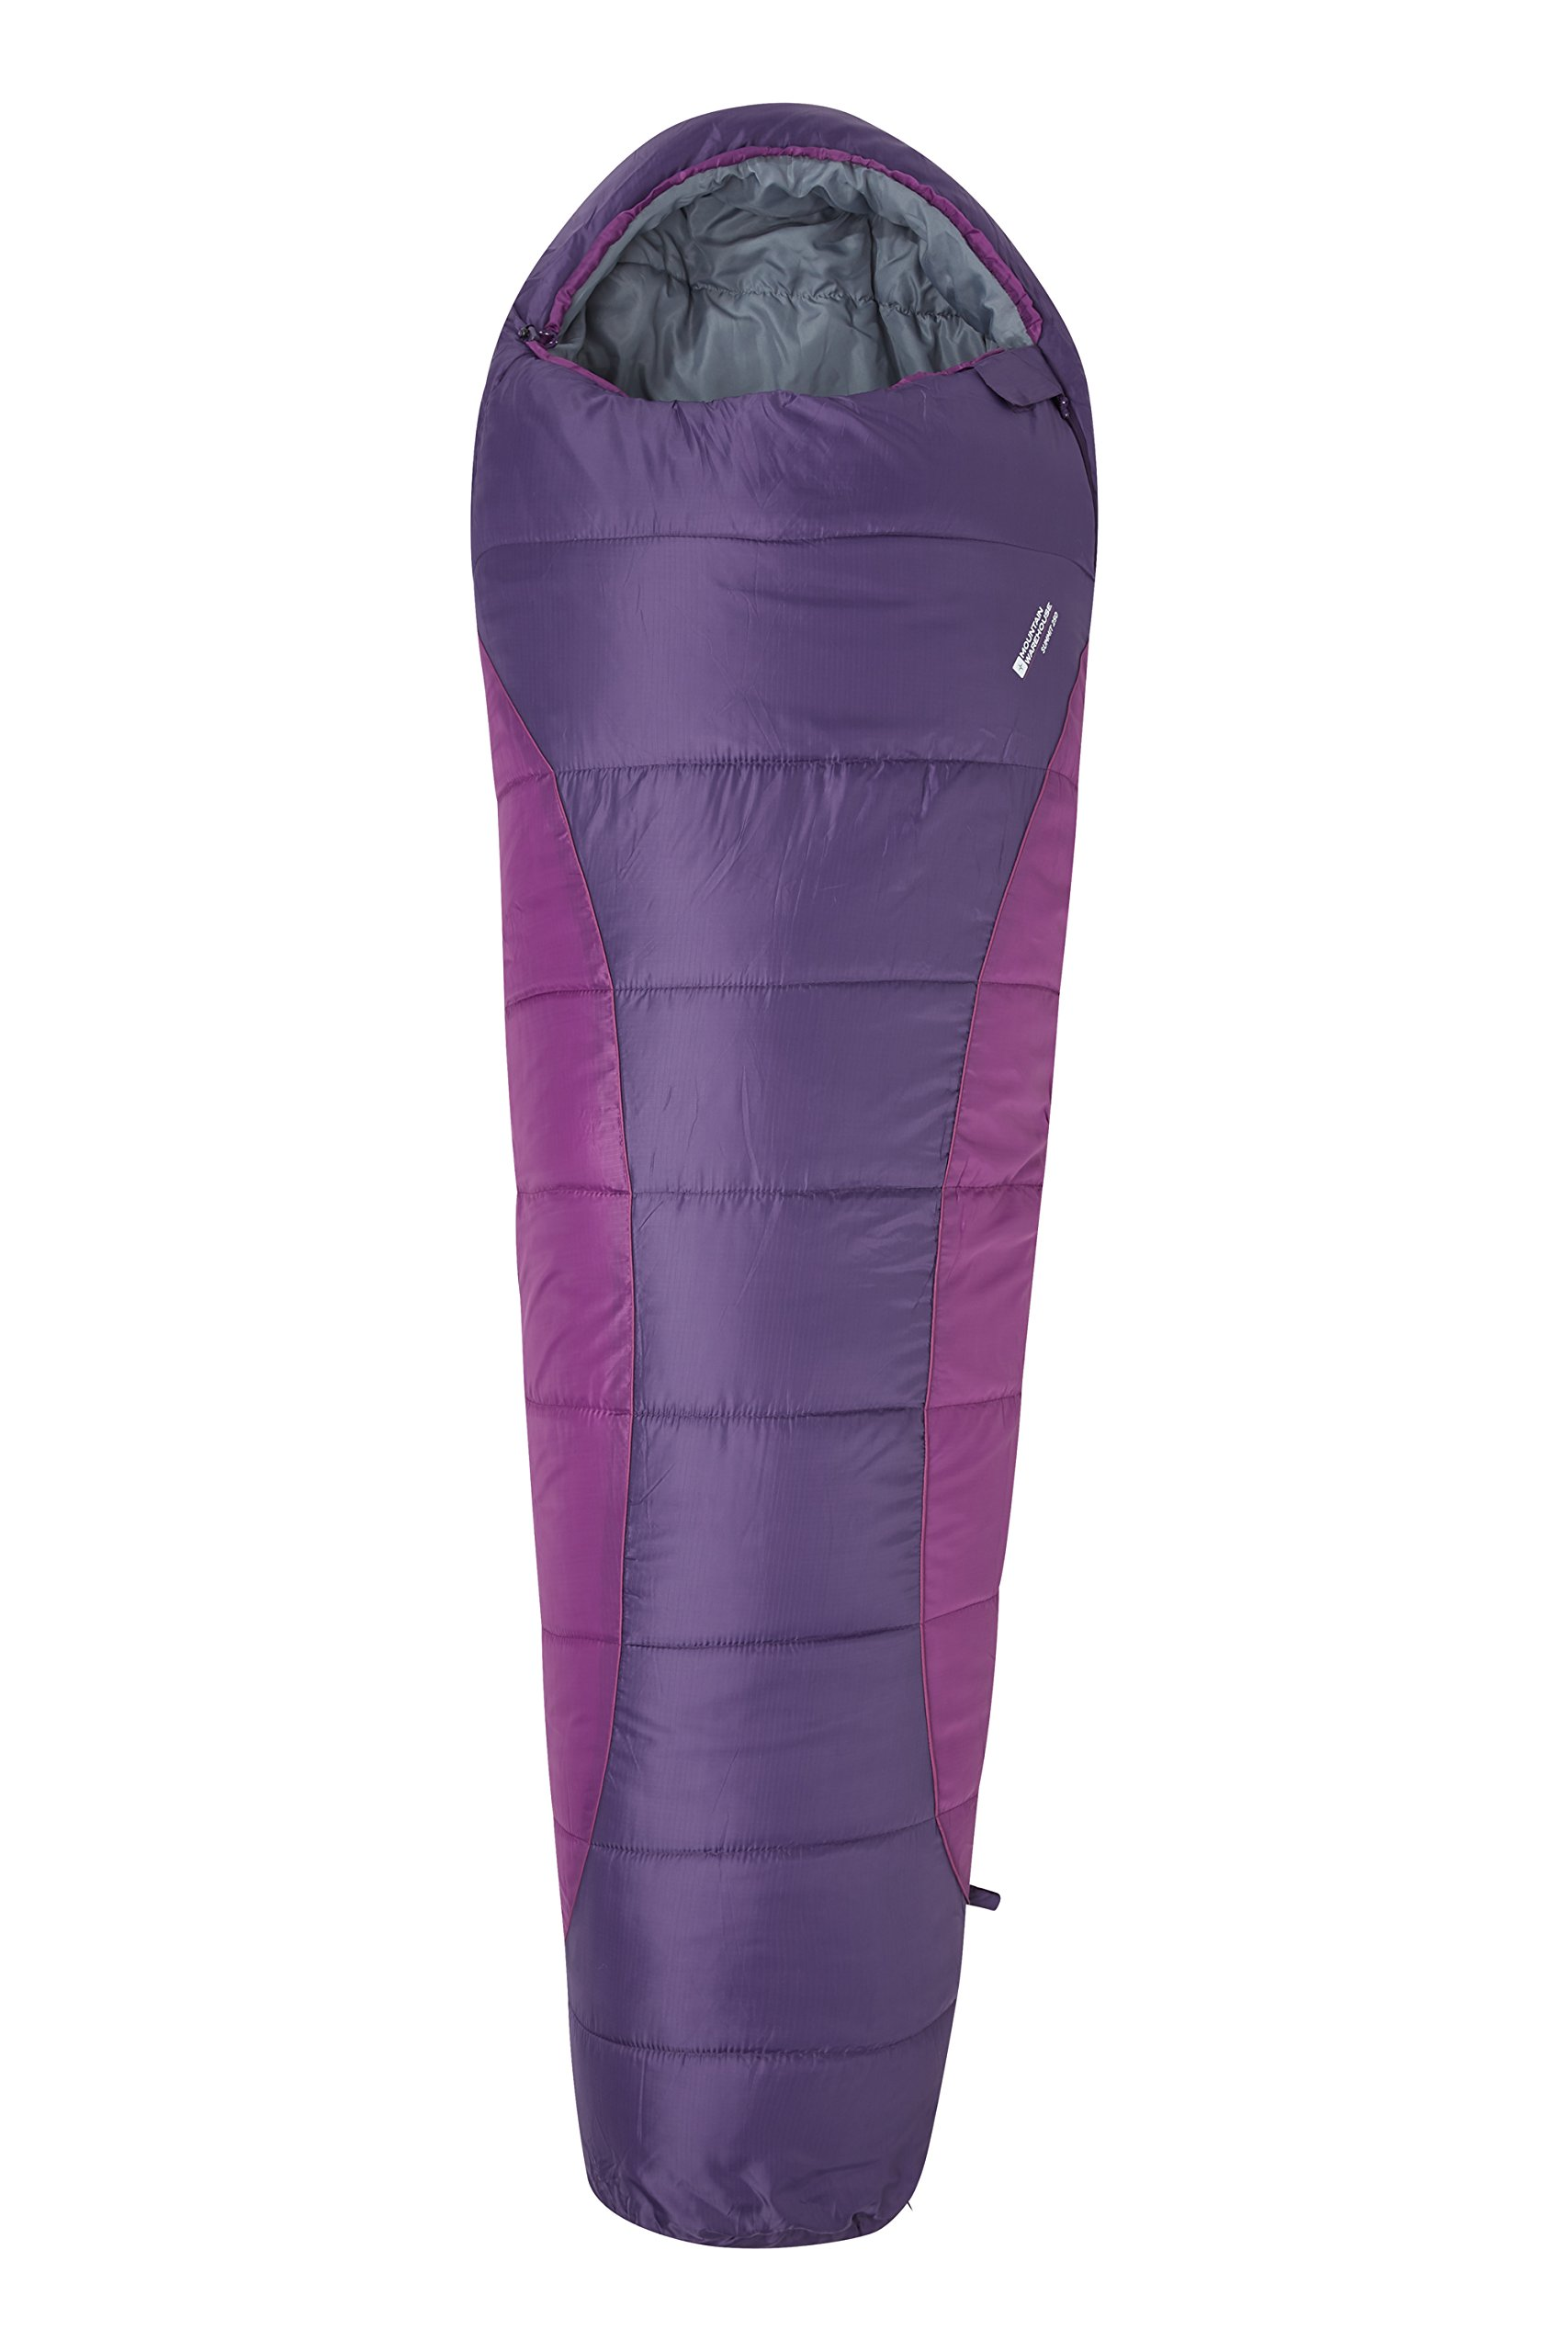 Mountain Warehouse Saco de dormir Summit 250 Color baya Right Handed Zip product image